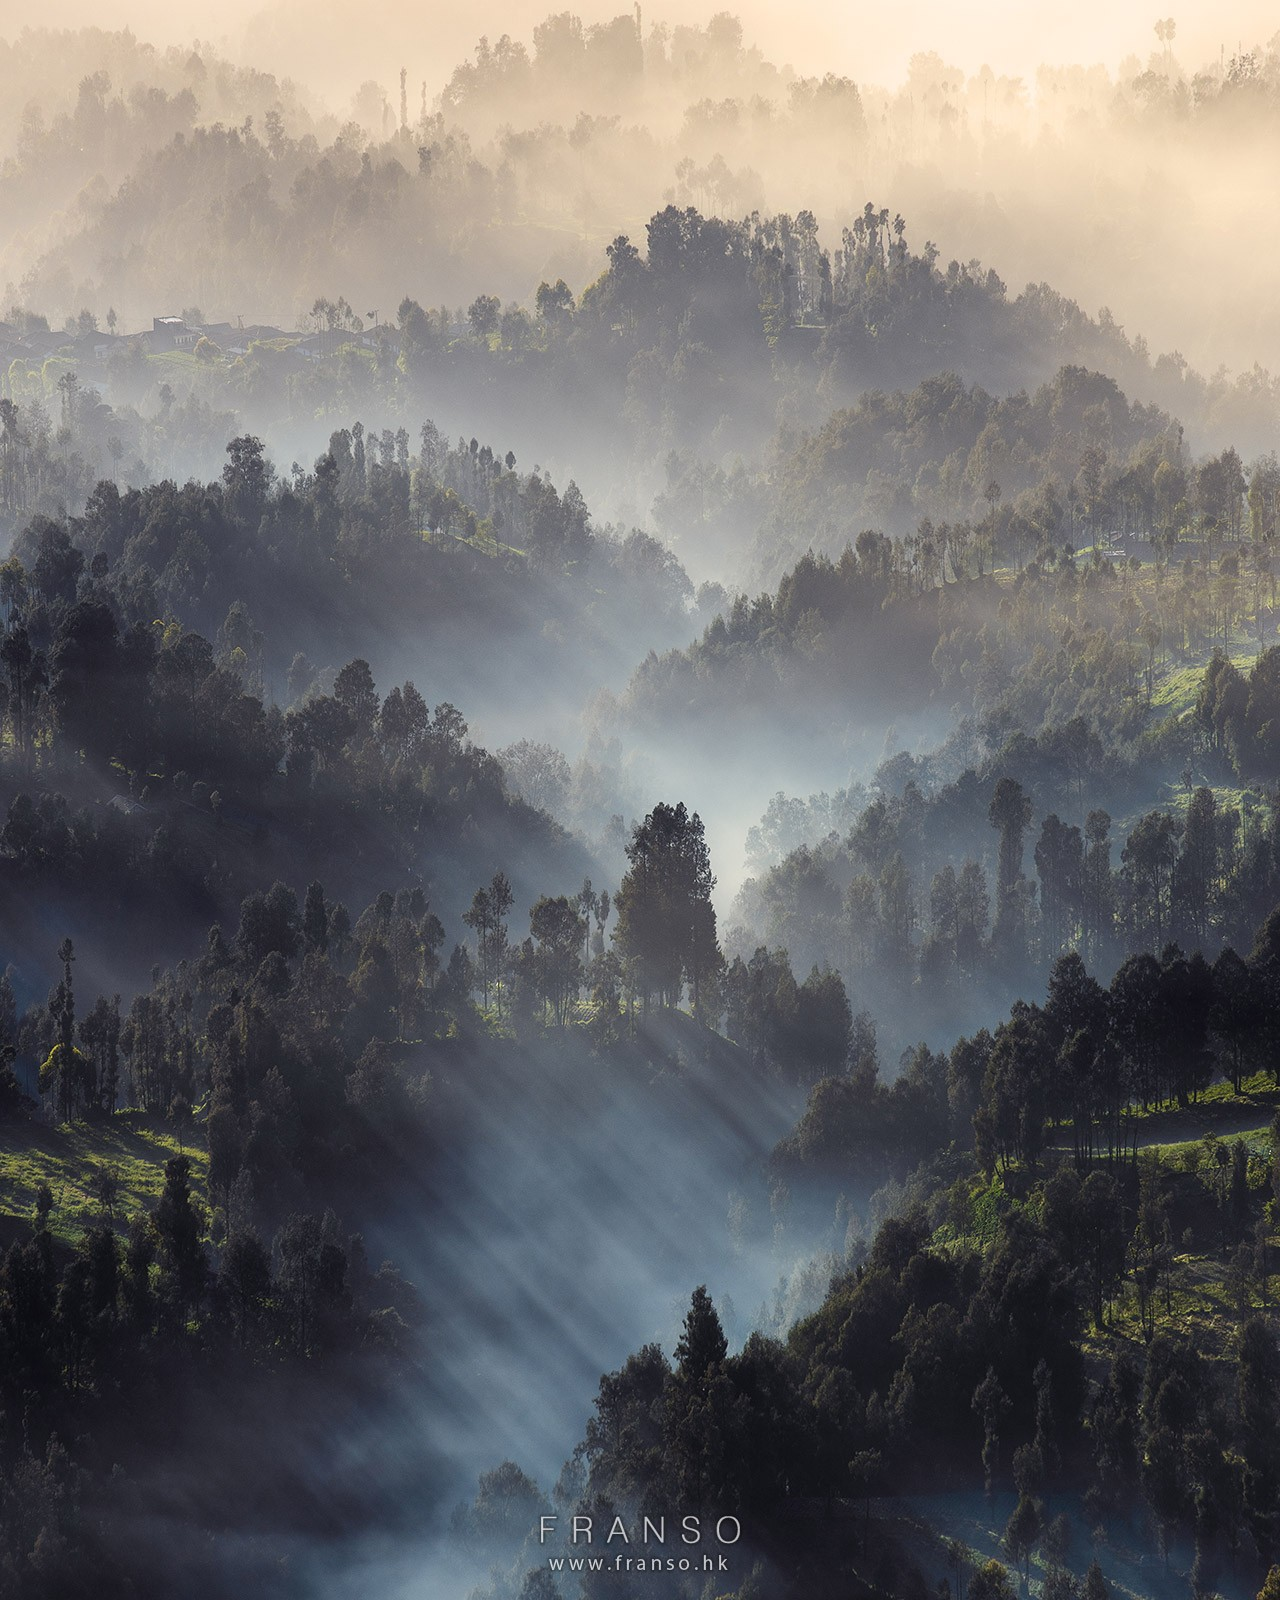 Landscape | Overseas | The mist and the forest |